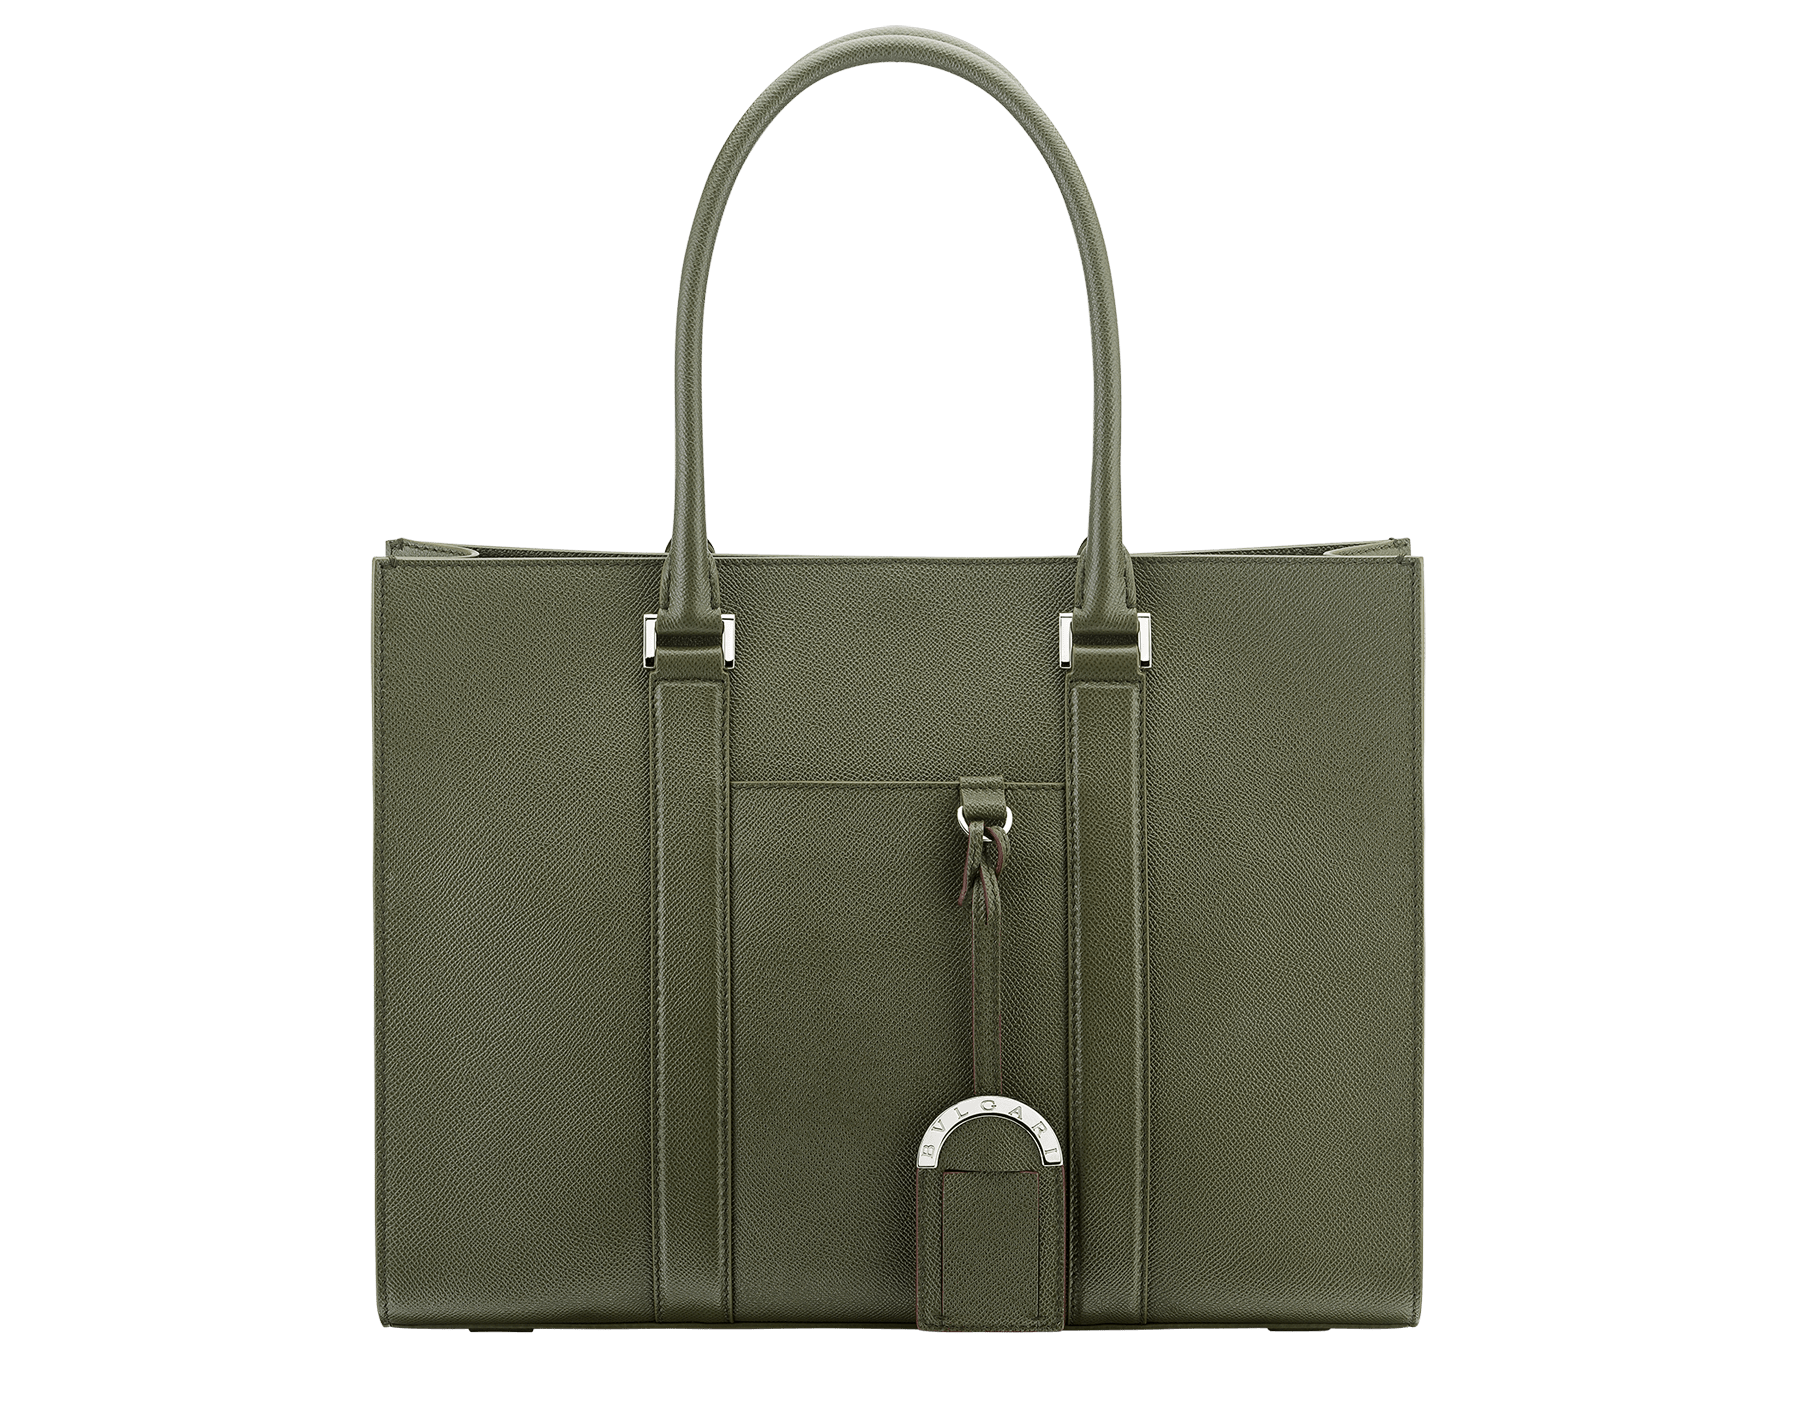 """BVLGARI BVLGARI"" tote bag in mimetic jade grain calf leather with brass palladium plated hardware. BBM-001-0623M image 1"